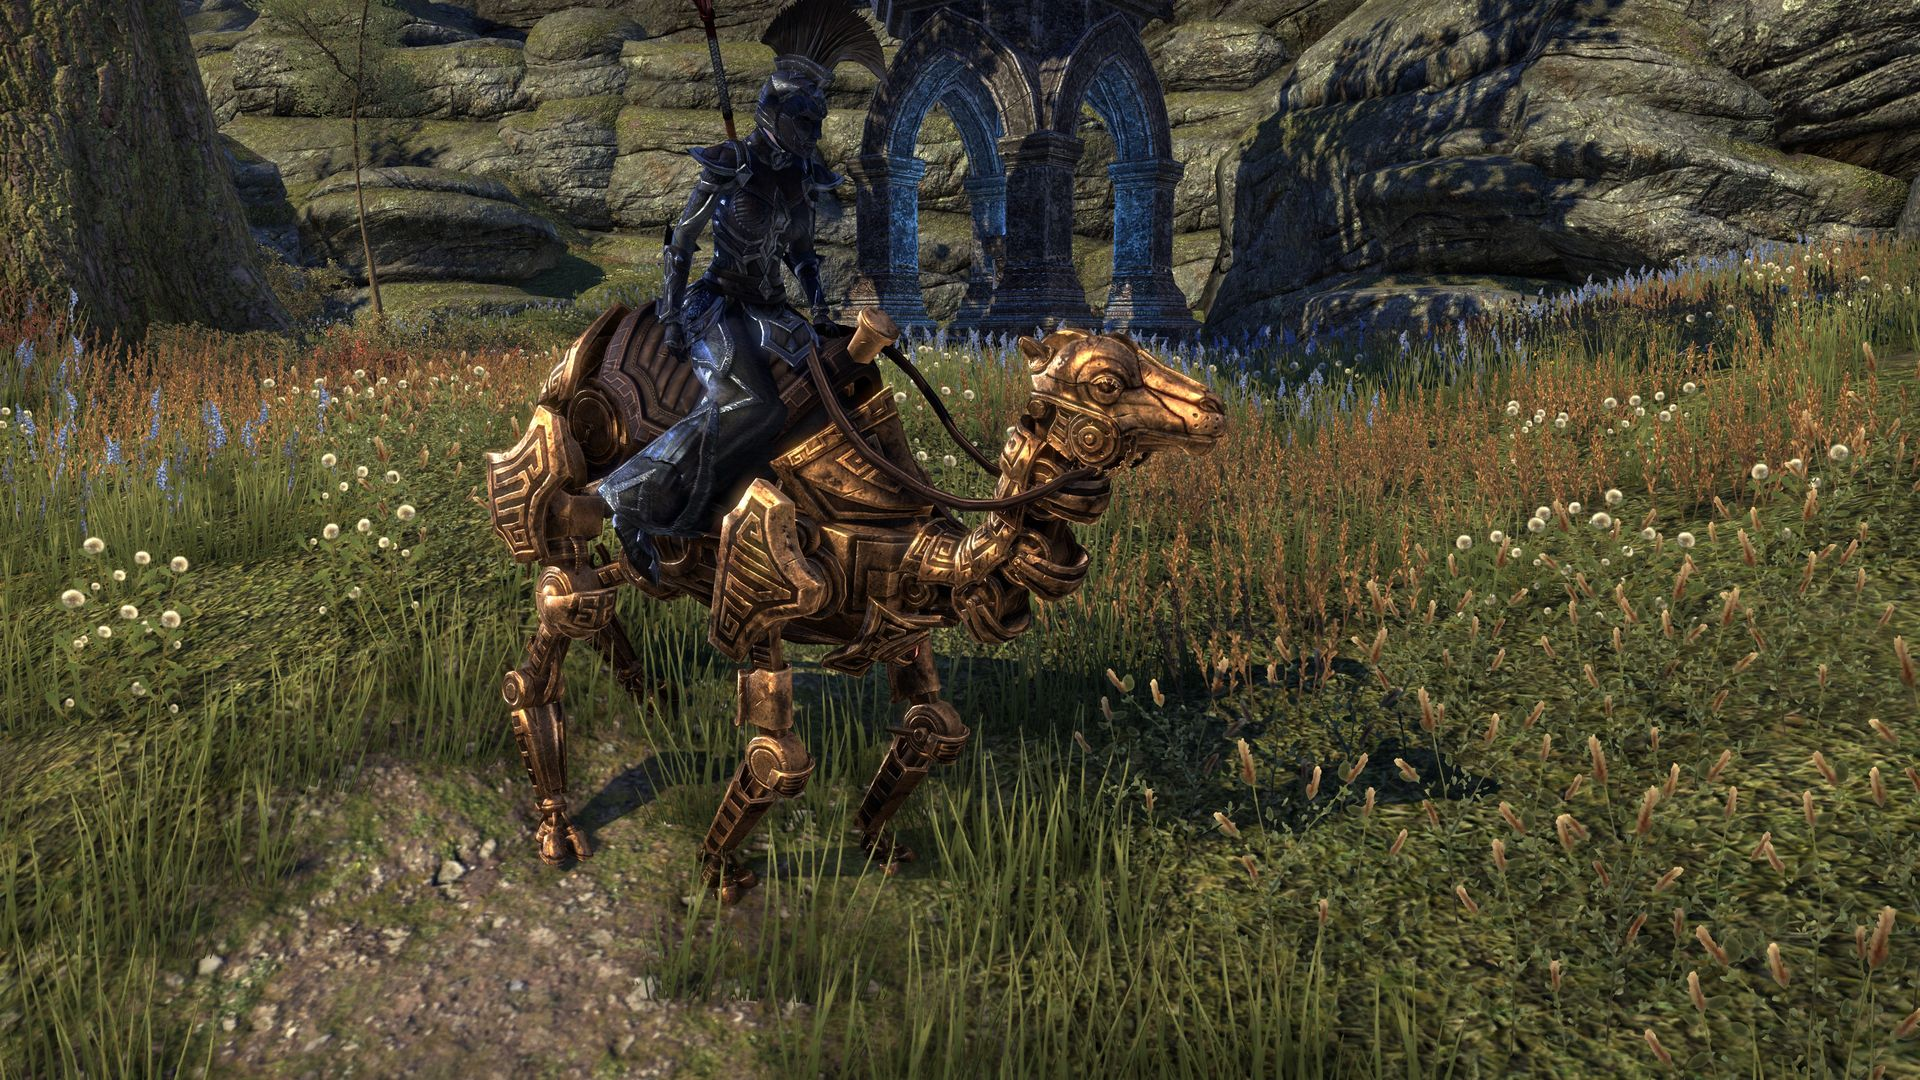 Dwarven Camel, Apex Mount, Dwarven Crown Crate (image by @serpentaa)